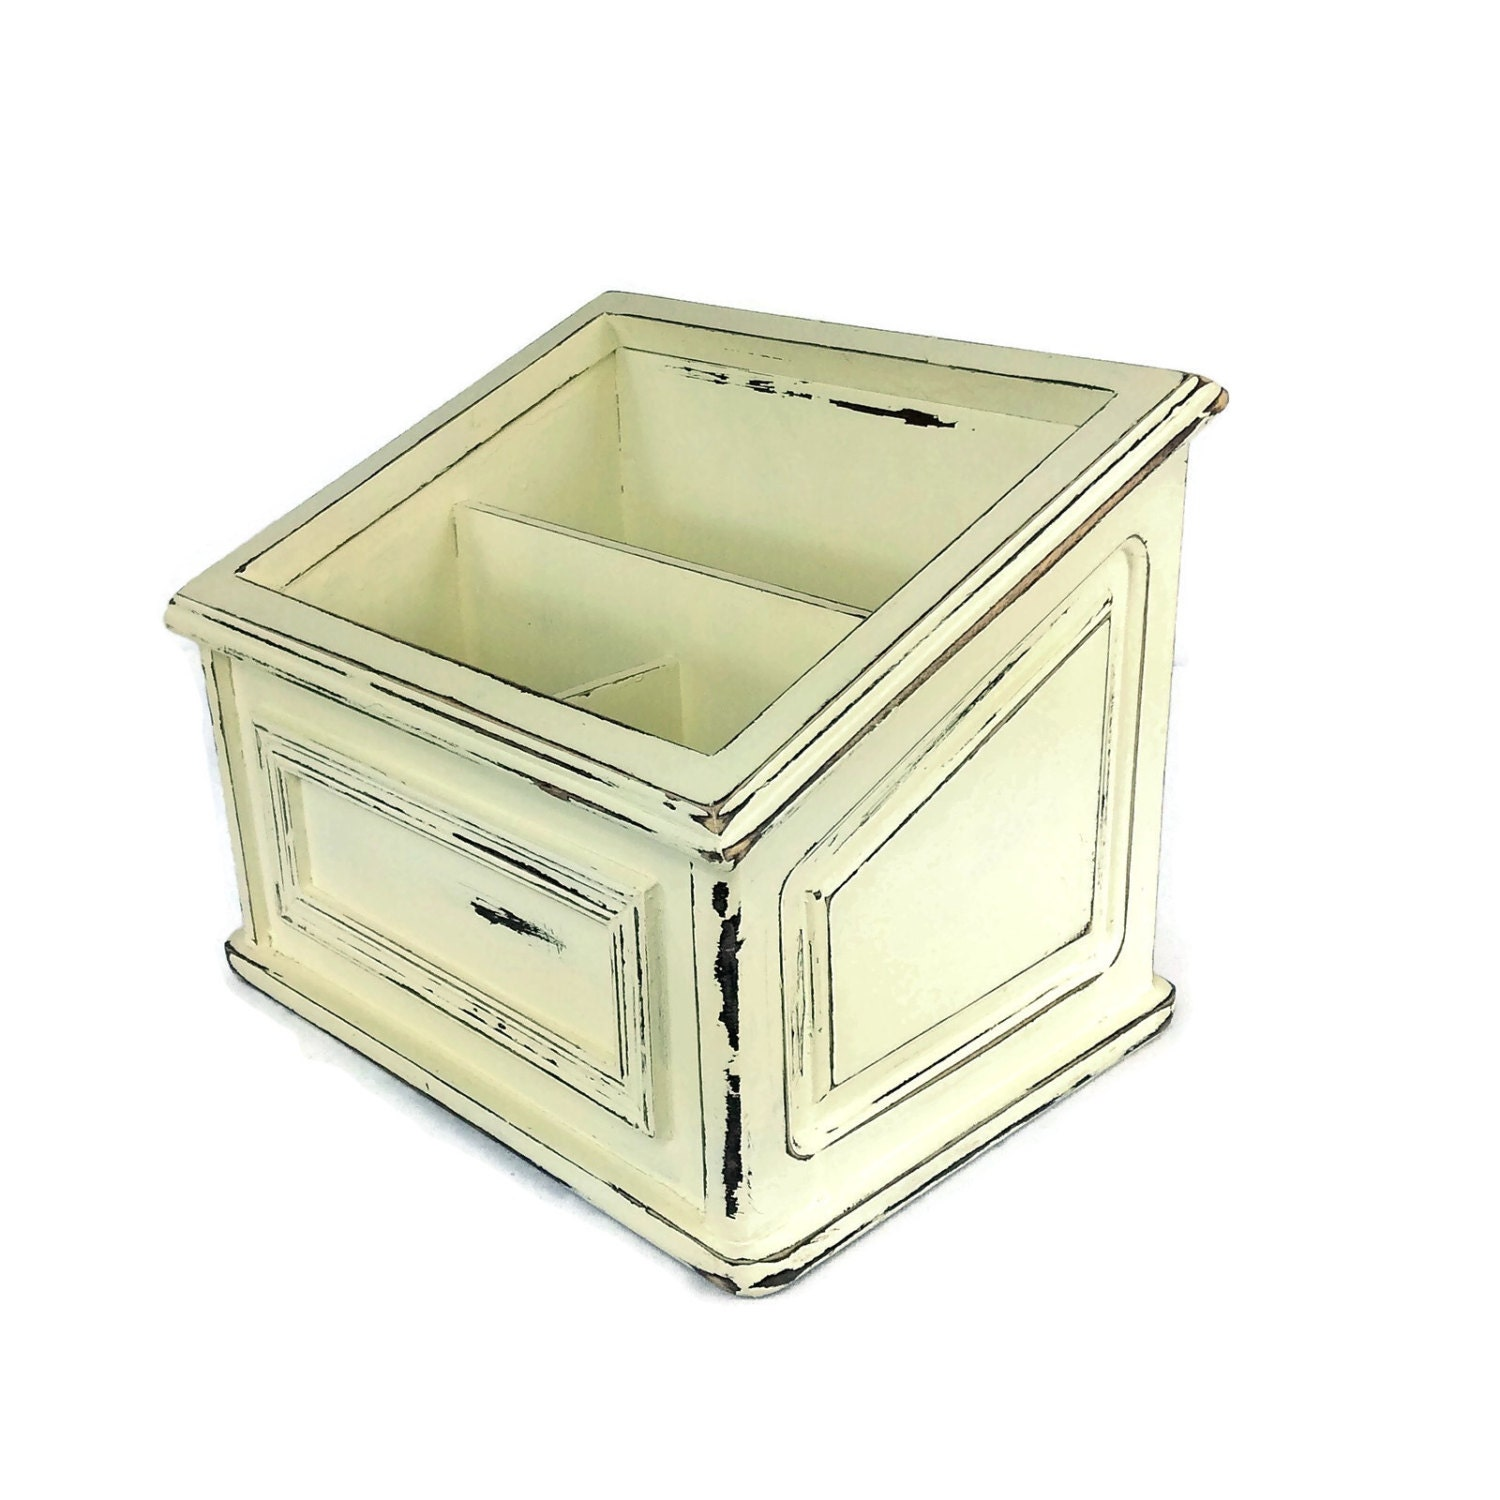 New Jewelry Box As Office Supplies Organizer  Arianna Belle The Blog